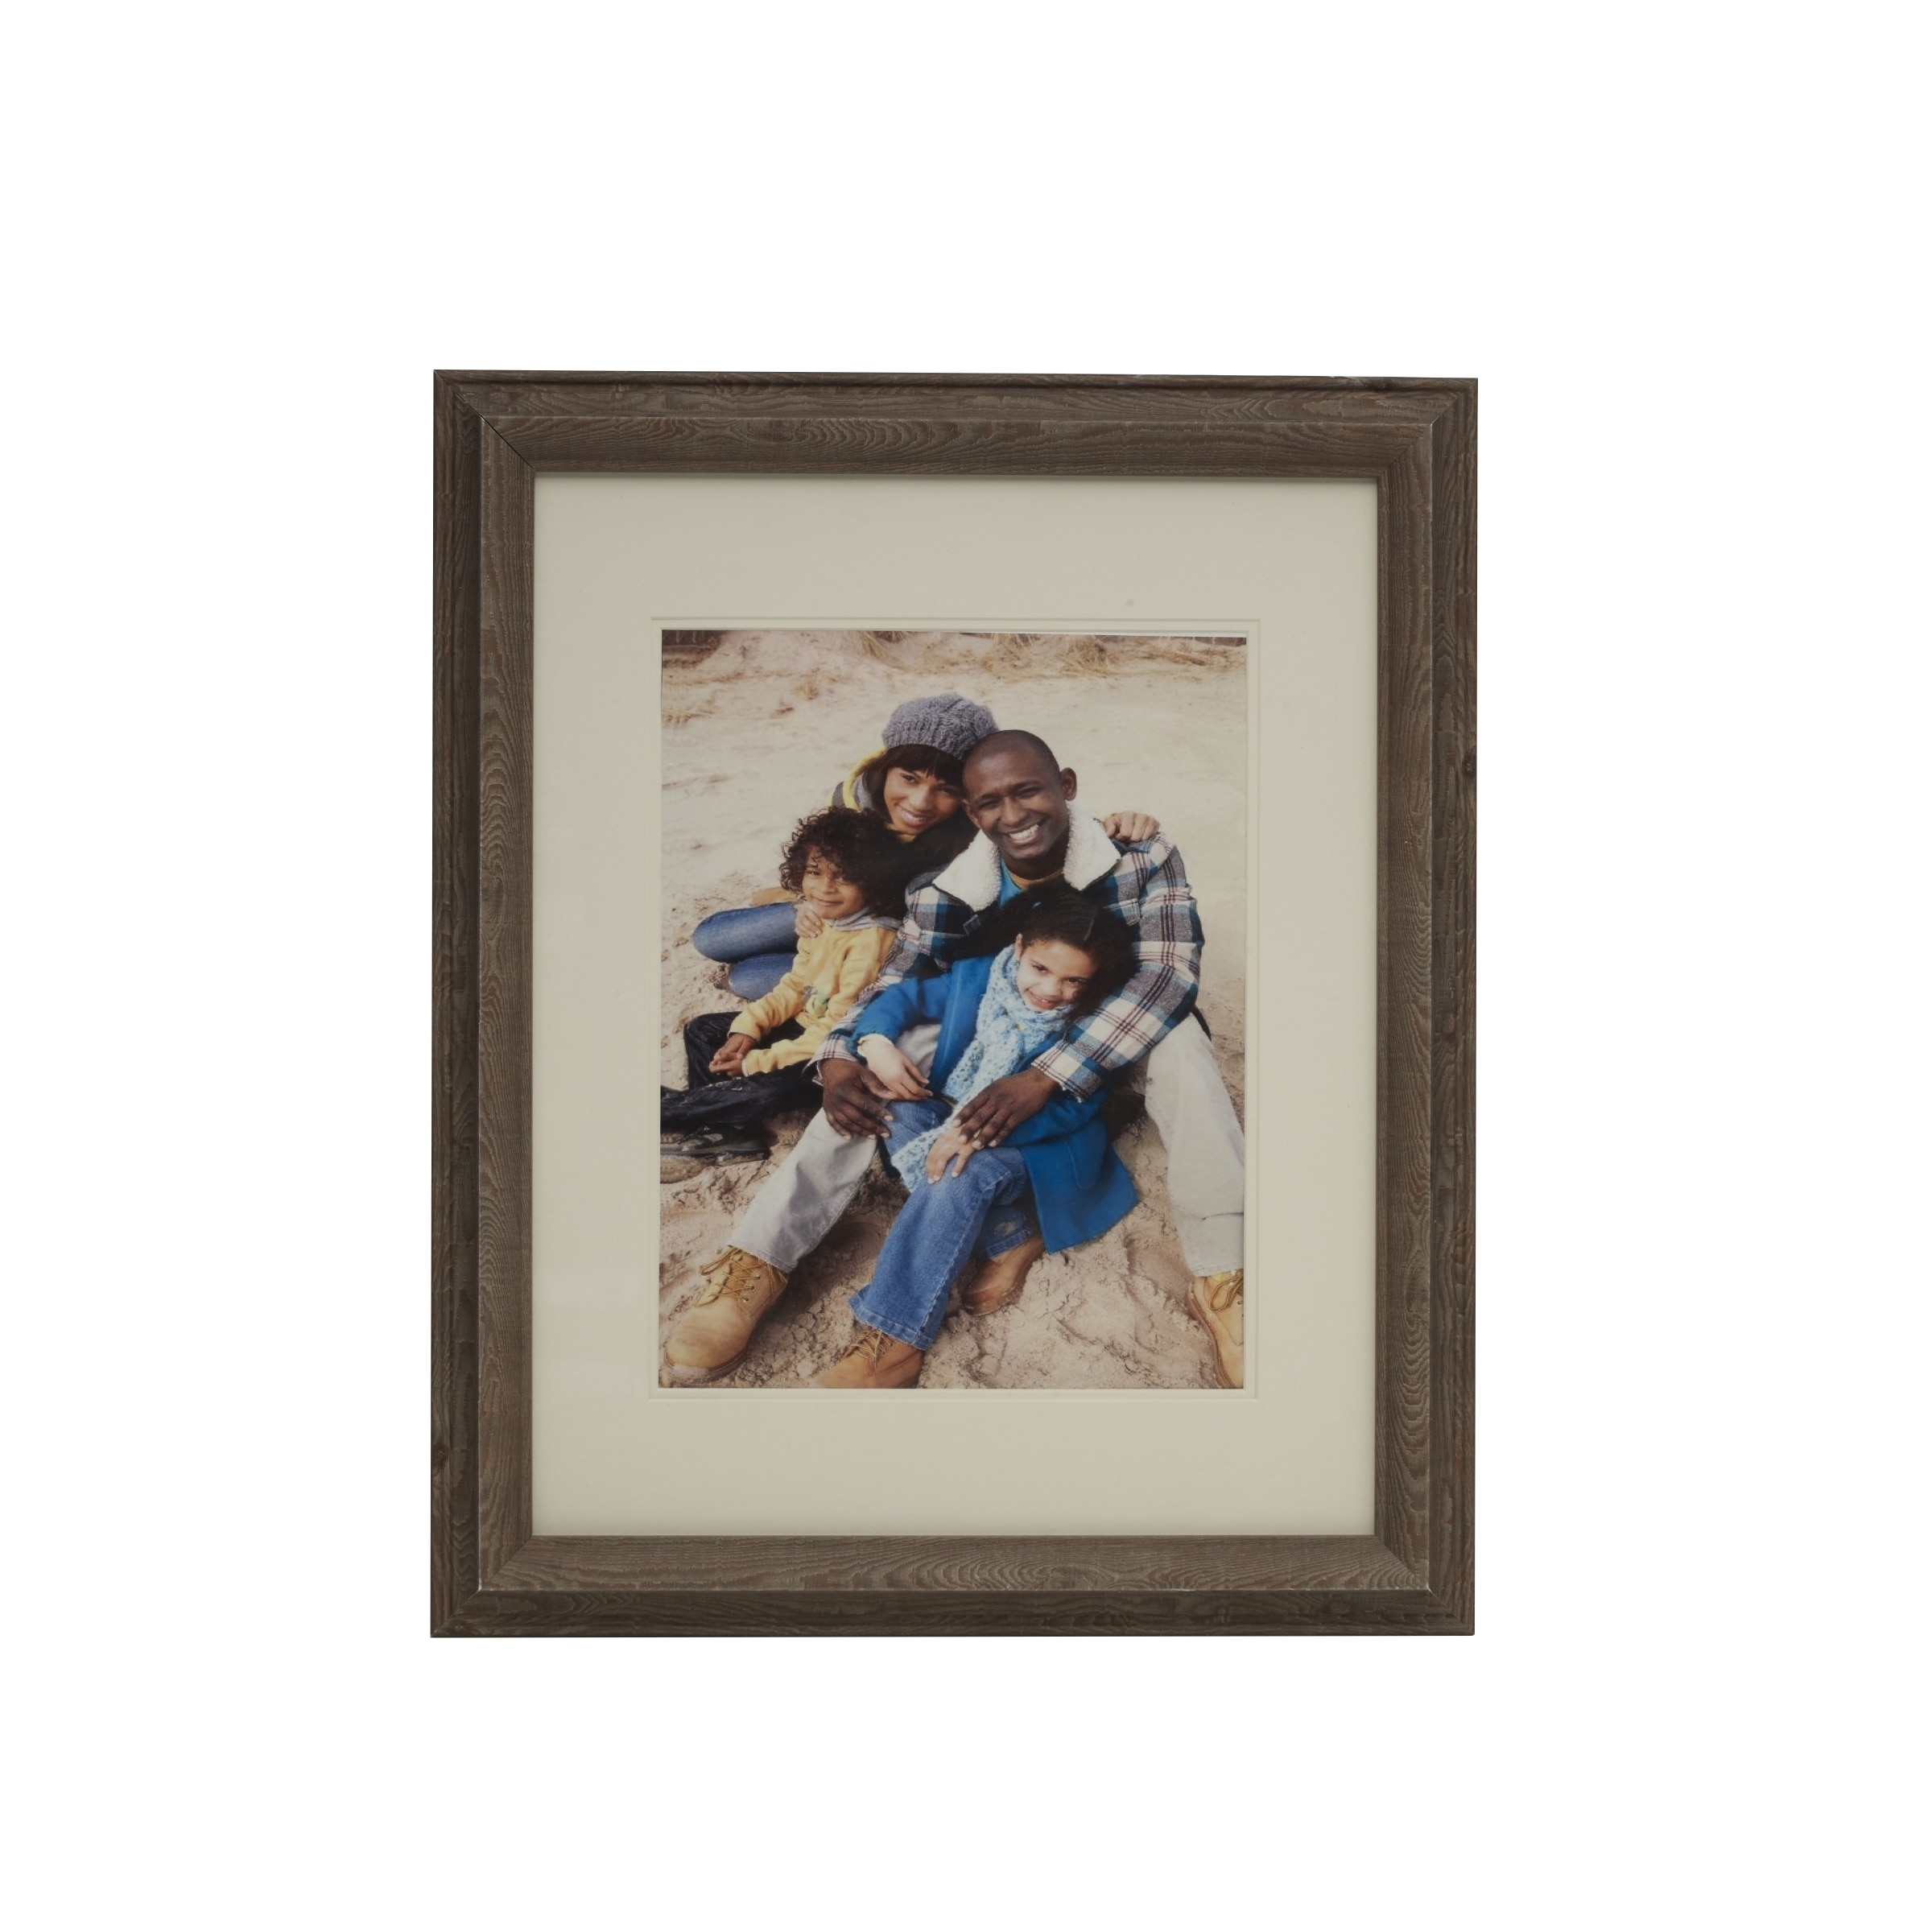 Melannco Wood 19x23 Photo Frame - Walmart.com